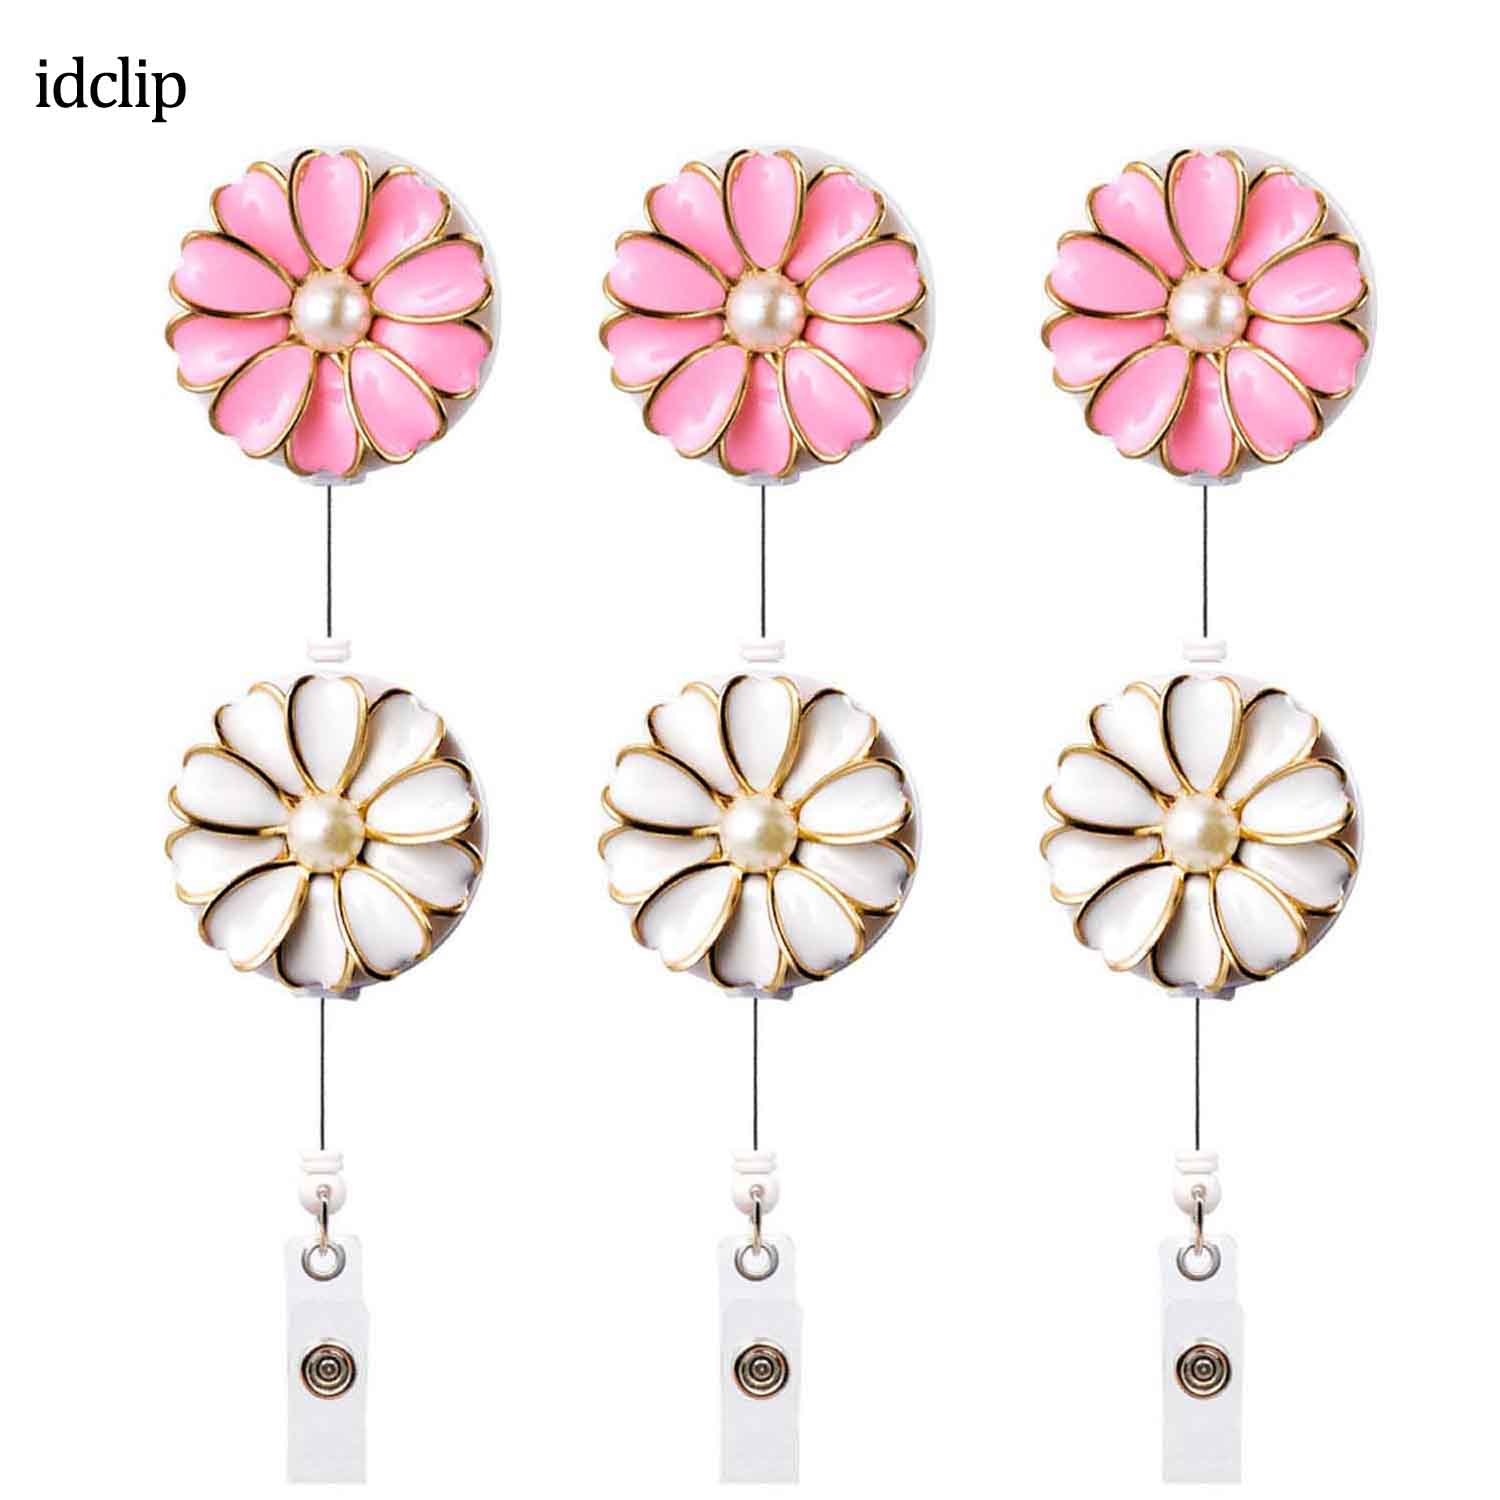 Idclip 6PCS Retractable Badge Holder With Alligator Clip Retractable Cord ID Badge Reel With Pearl 24 Inch